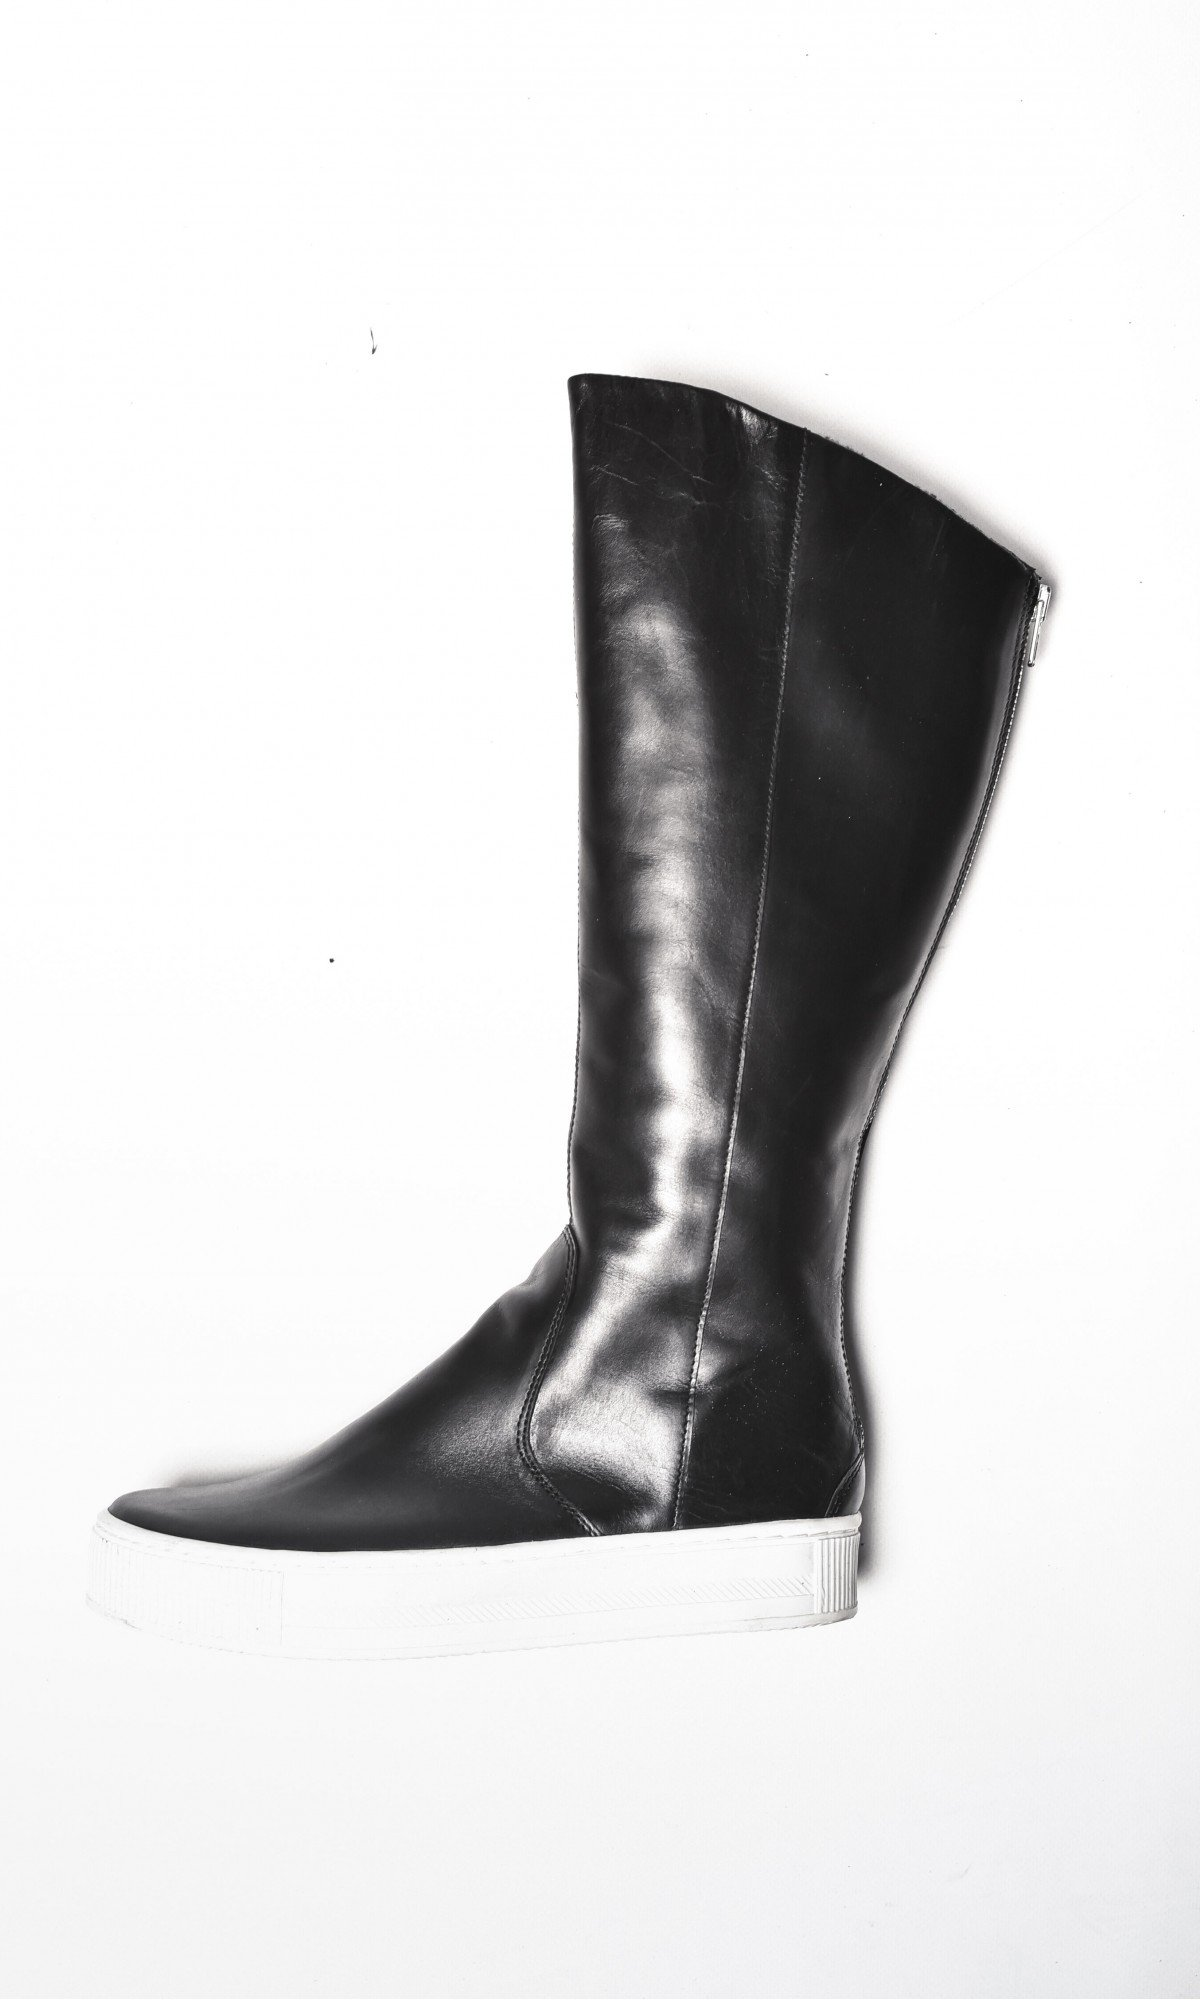 Genuine Leather White Platform Zipper High Boots A21347